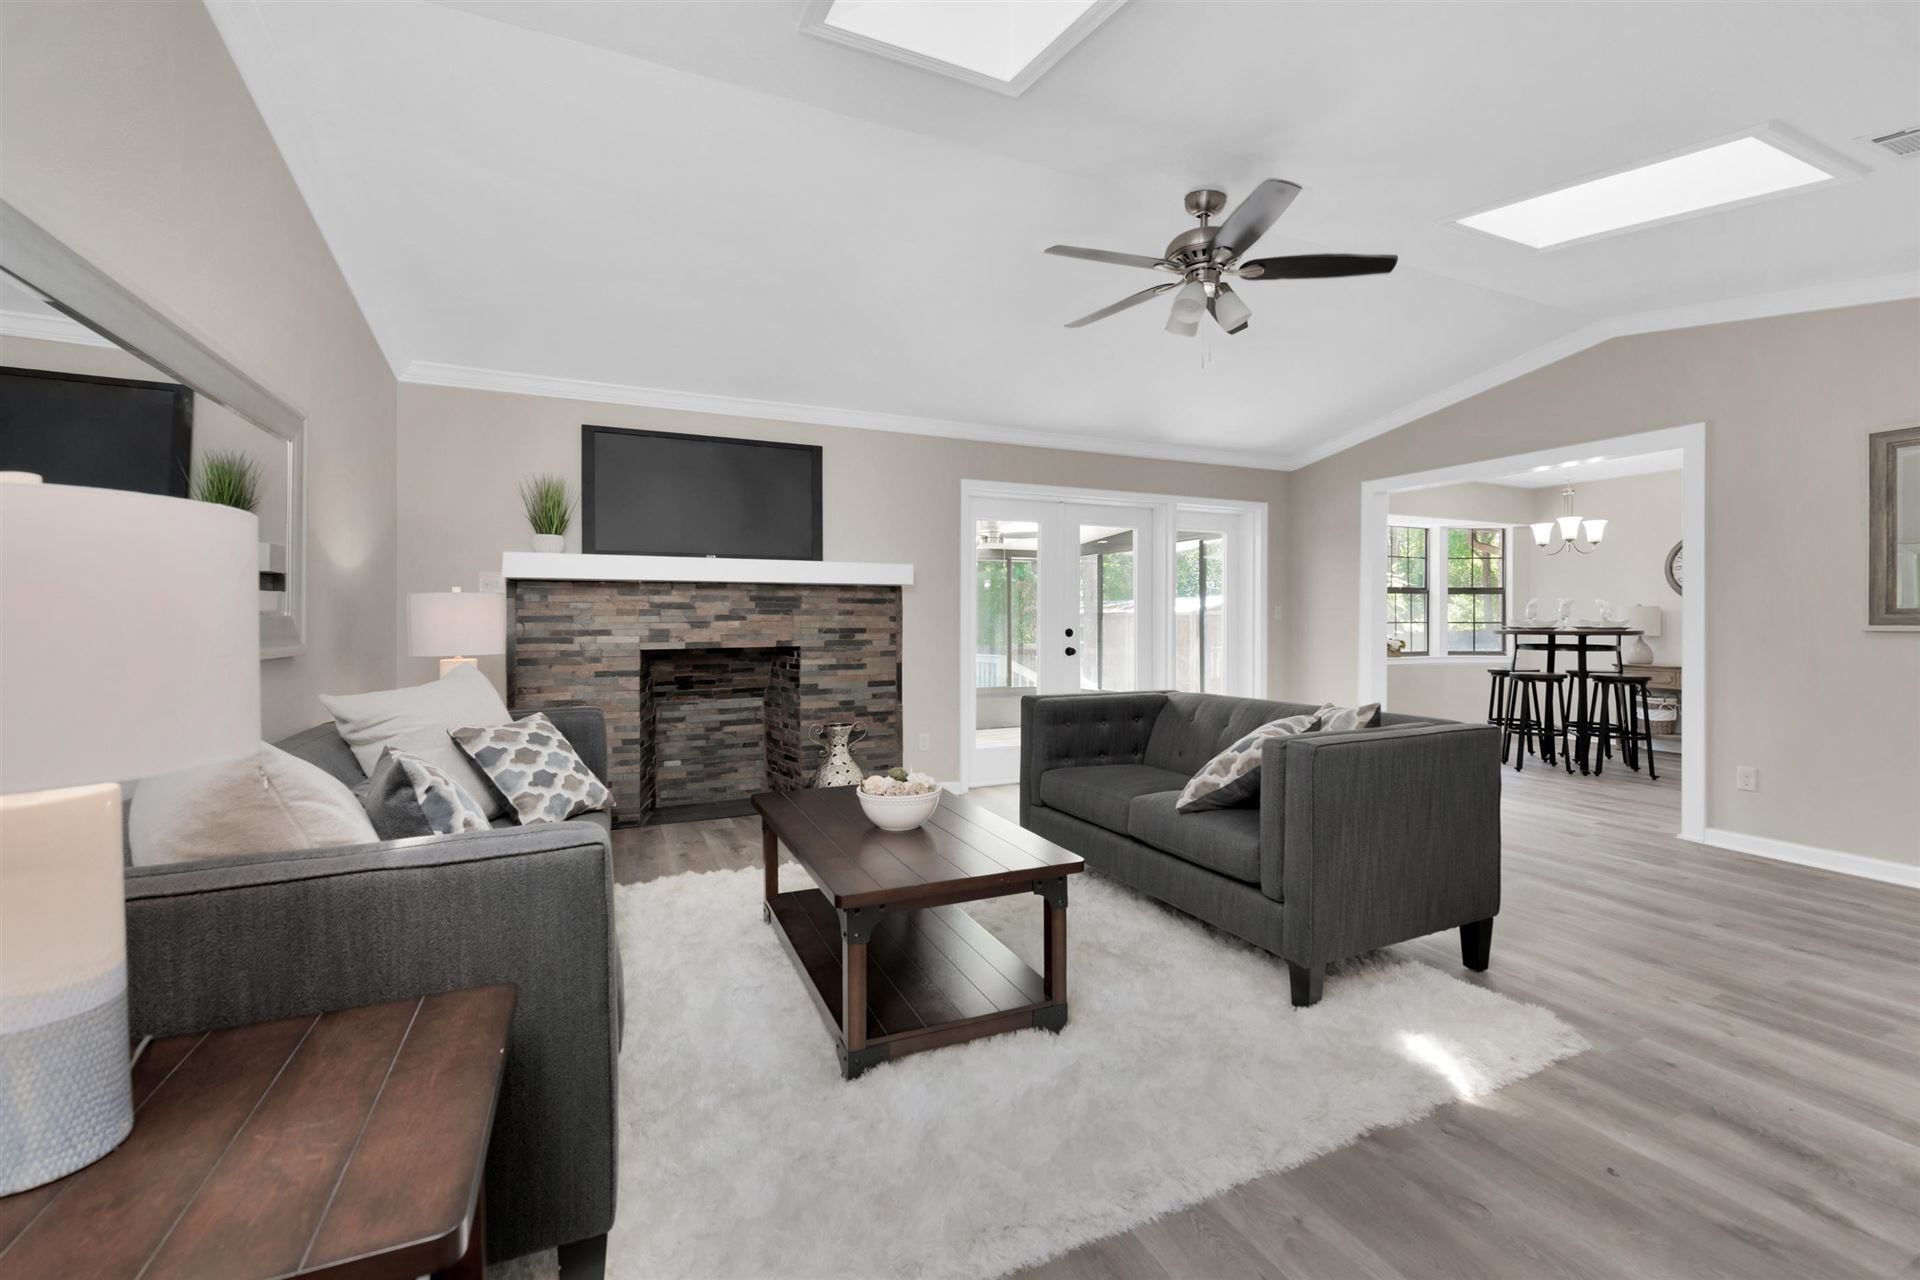 Property Image Of 407 Martinique Cove In Niceville, Fl